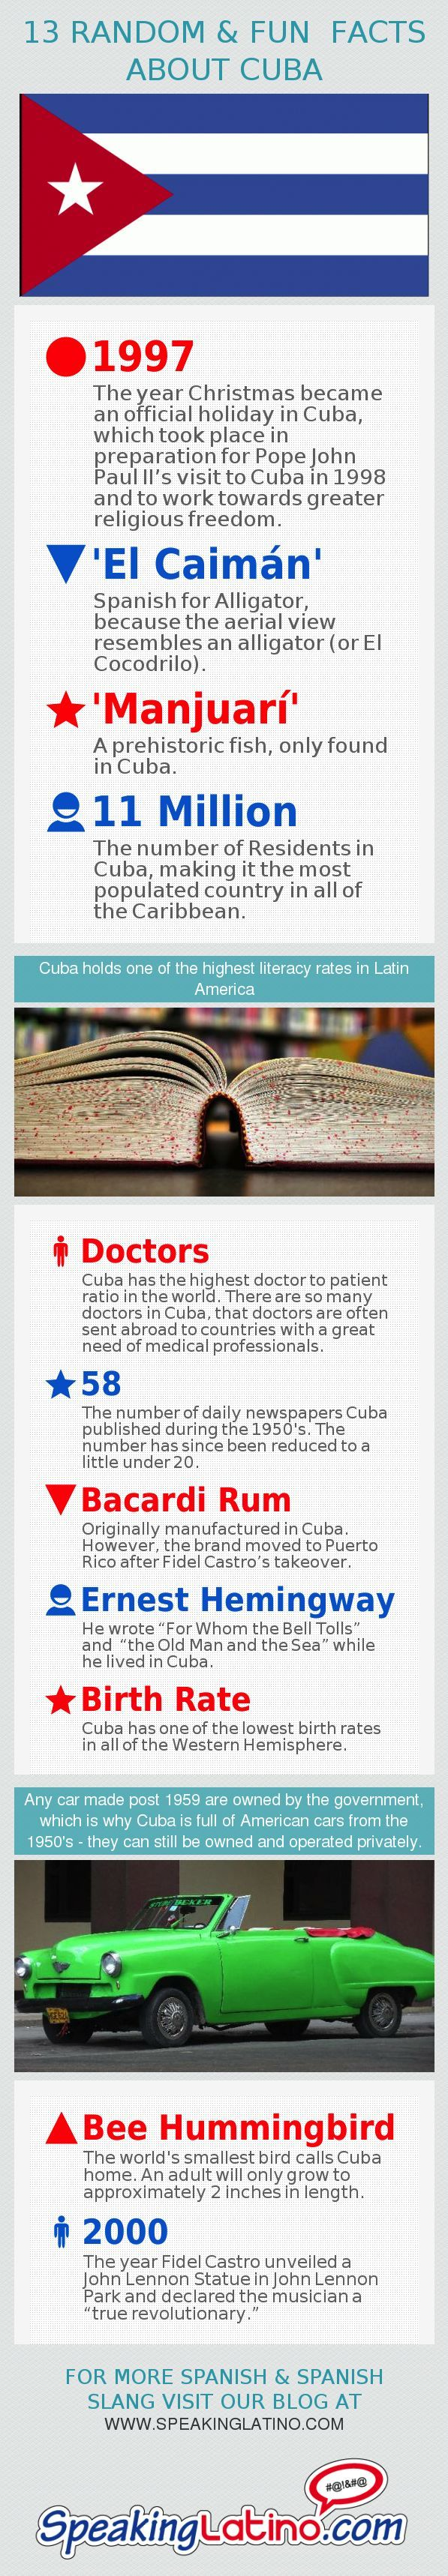 #Infographic: 13 Random Fun Facts About Cuba | A list of random fun facts about Cuba that you may not know. Cuba has plenty of other interesting facts that have nothing to do with the Castro family or a tumultuous political past. #Cuba via http://www.speakinglatino.com/13-random-fun-facts-about-cuba/: